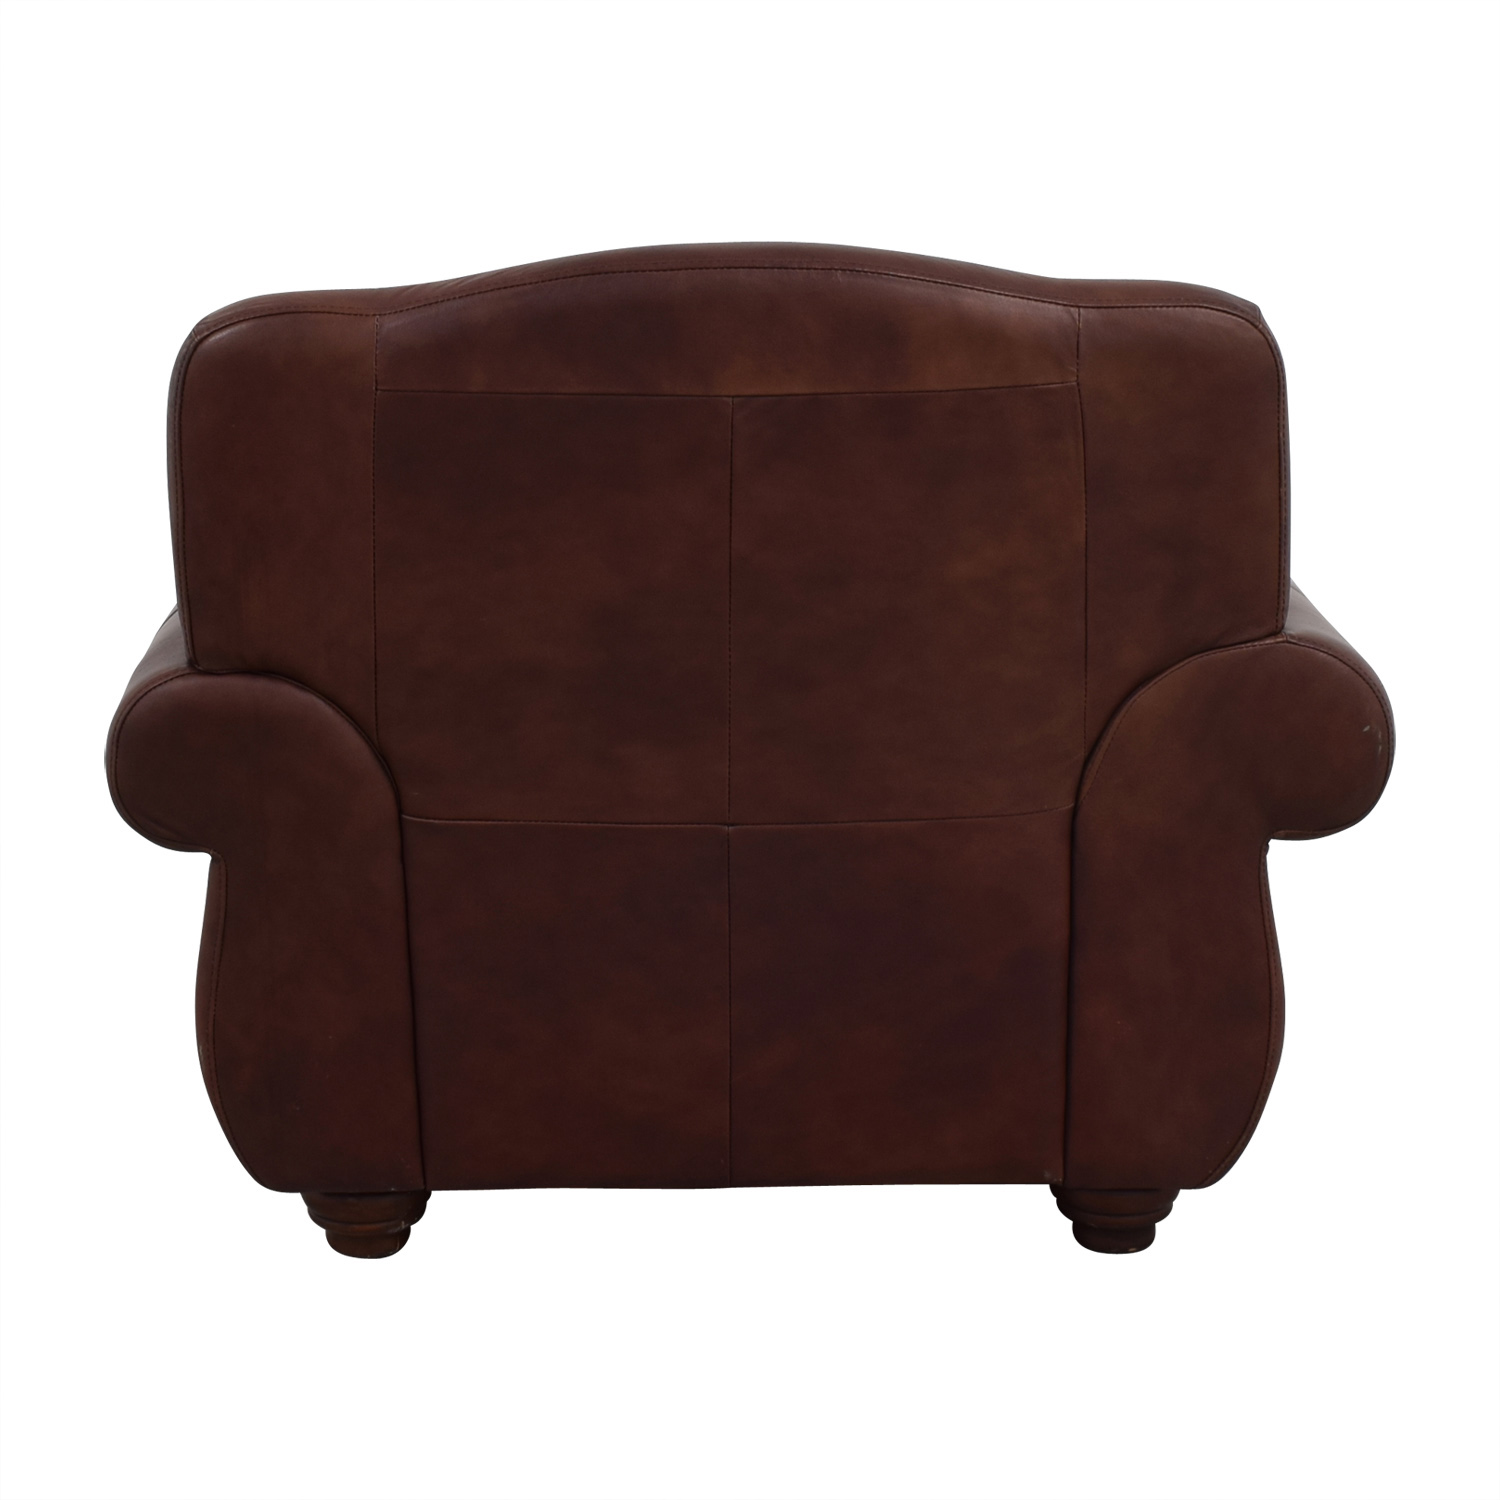 Rooms To Go Rooms To Go Brown Leather Accent Chair